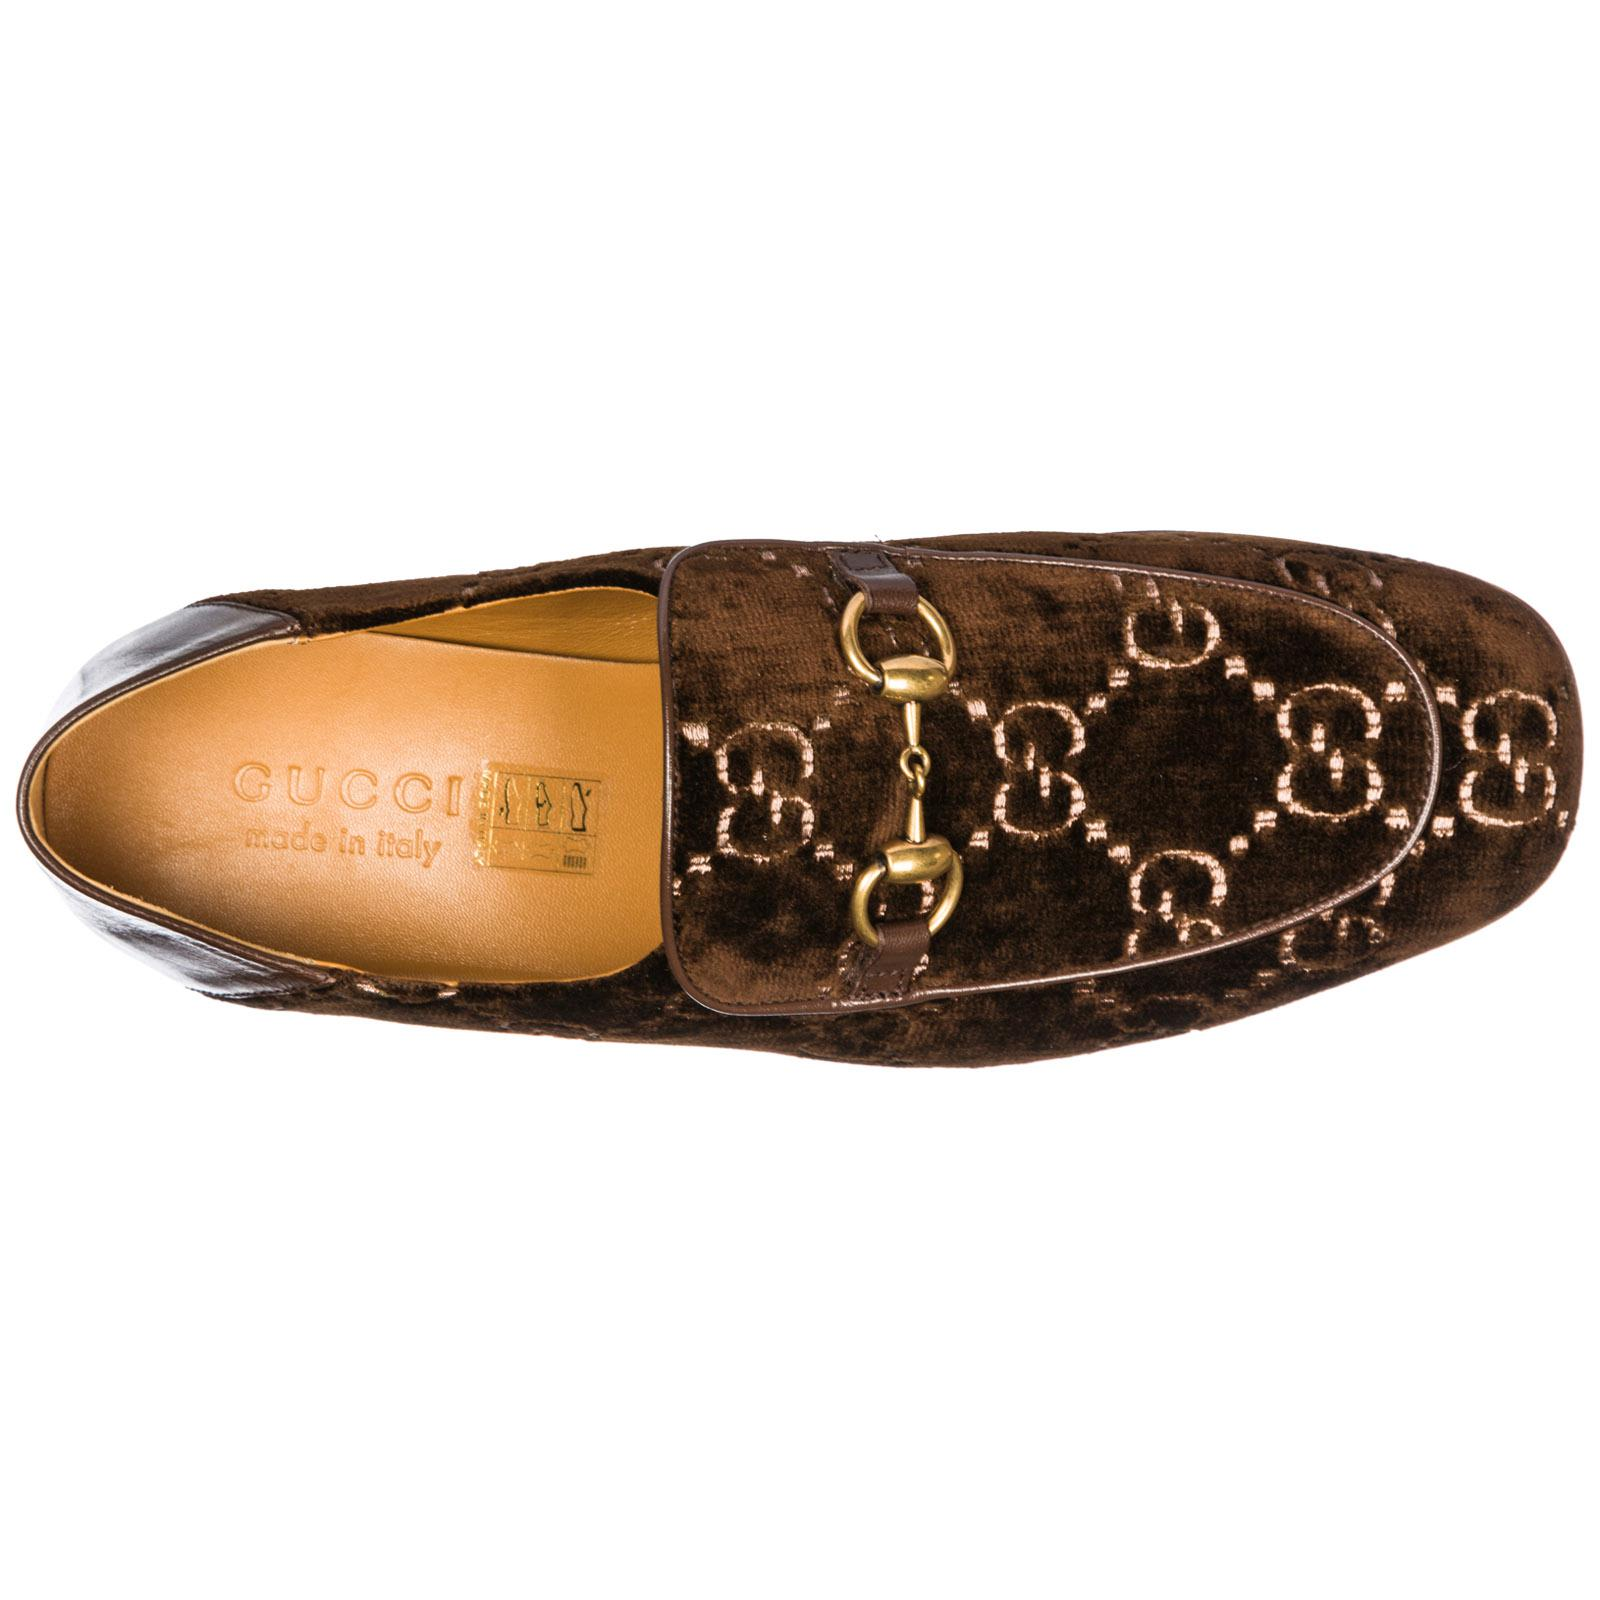 11158172a92 Gucci Loafers Moccasins in Brown for Men - Lyst